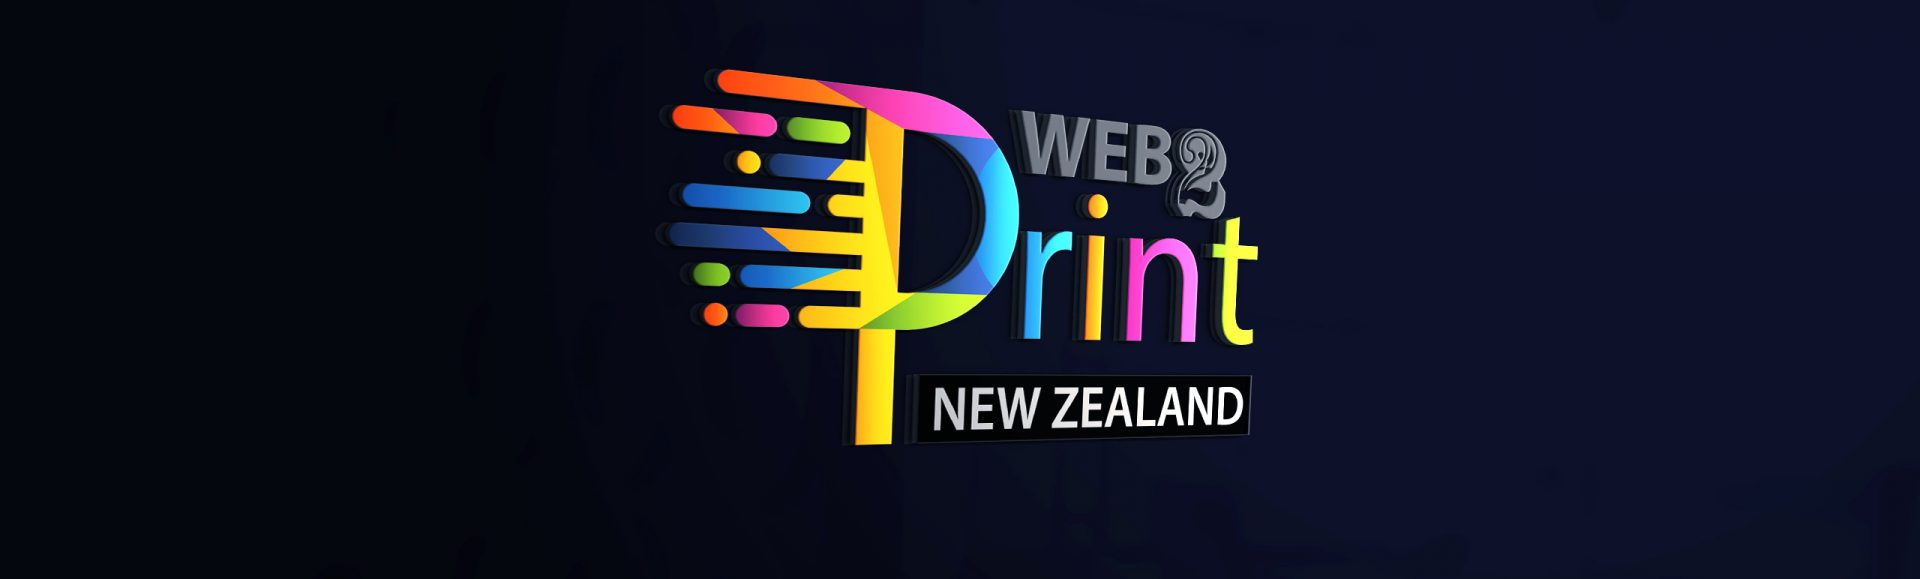 Web 2 Print NZ - Best value for your money!